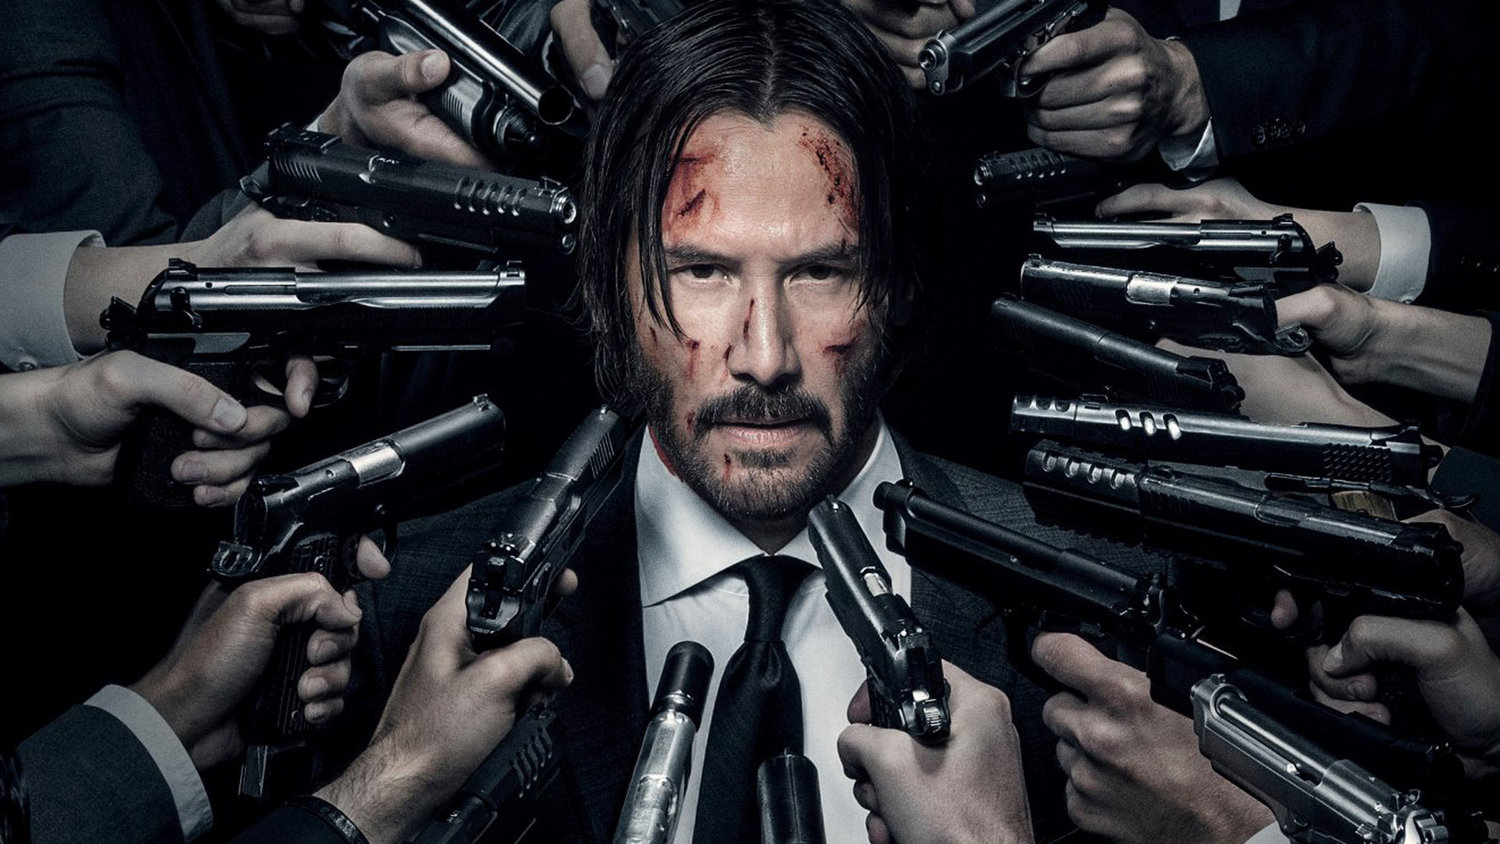 Review: JOHN WICK: CHAPTER 2 is As Close to Perfect As a JOHN WICK Sequel Can Be